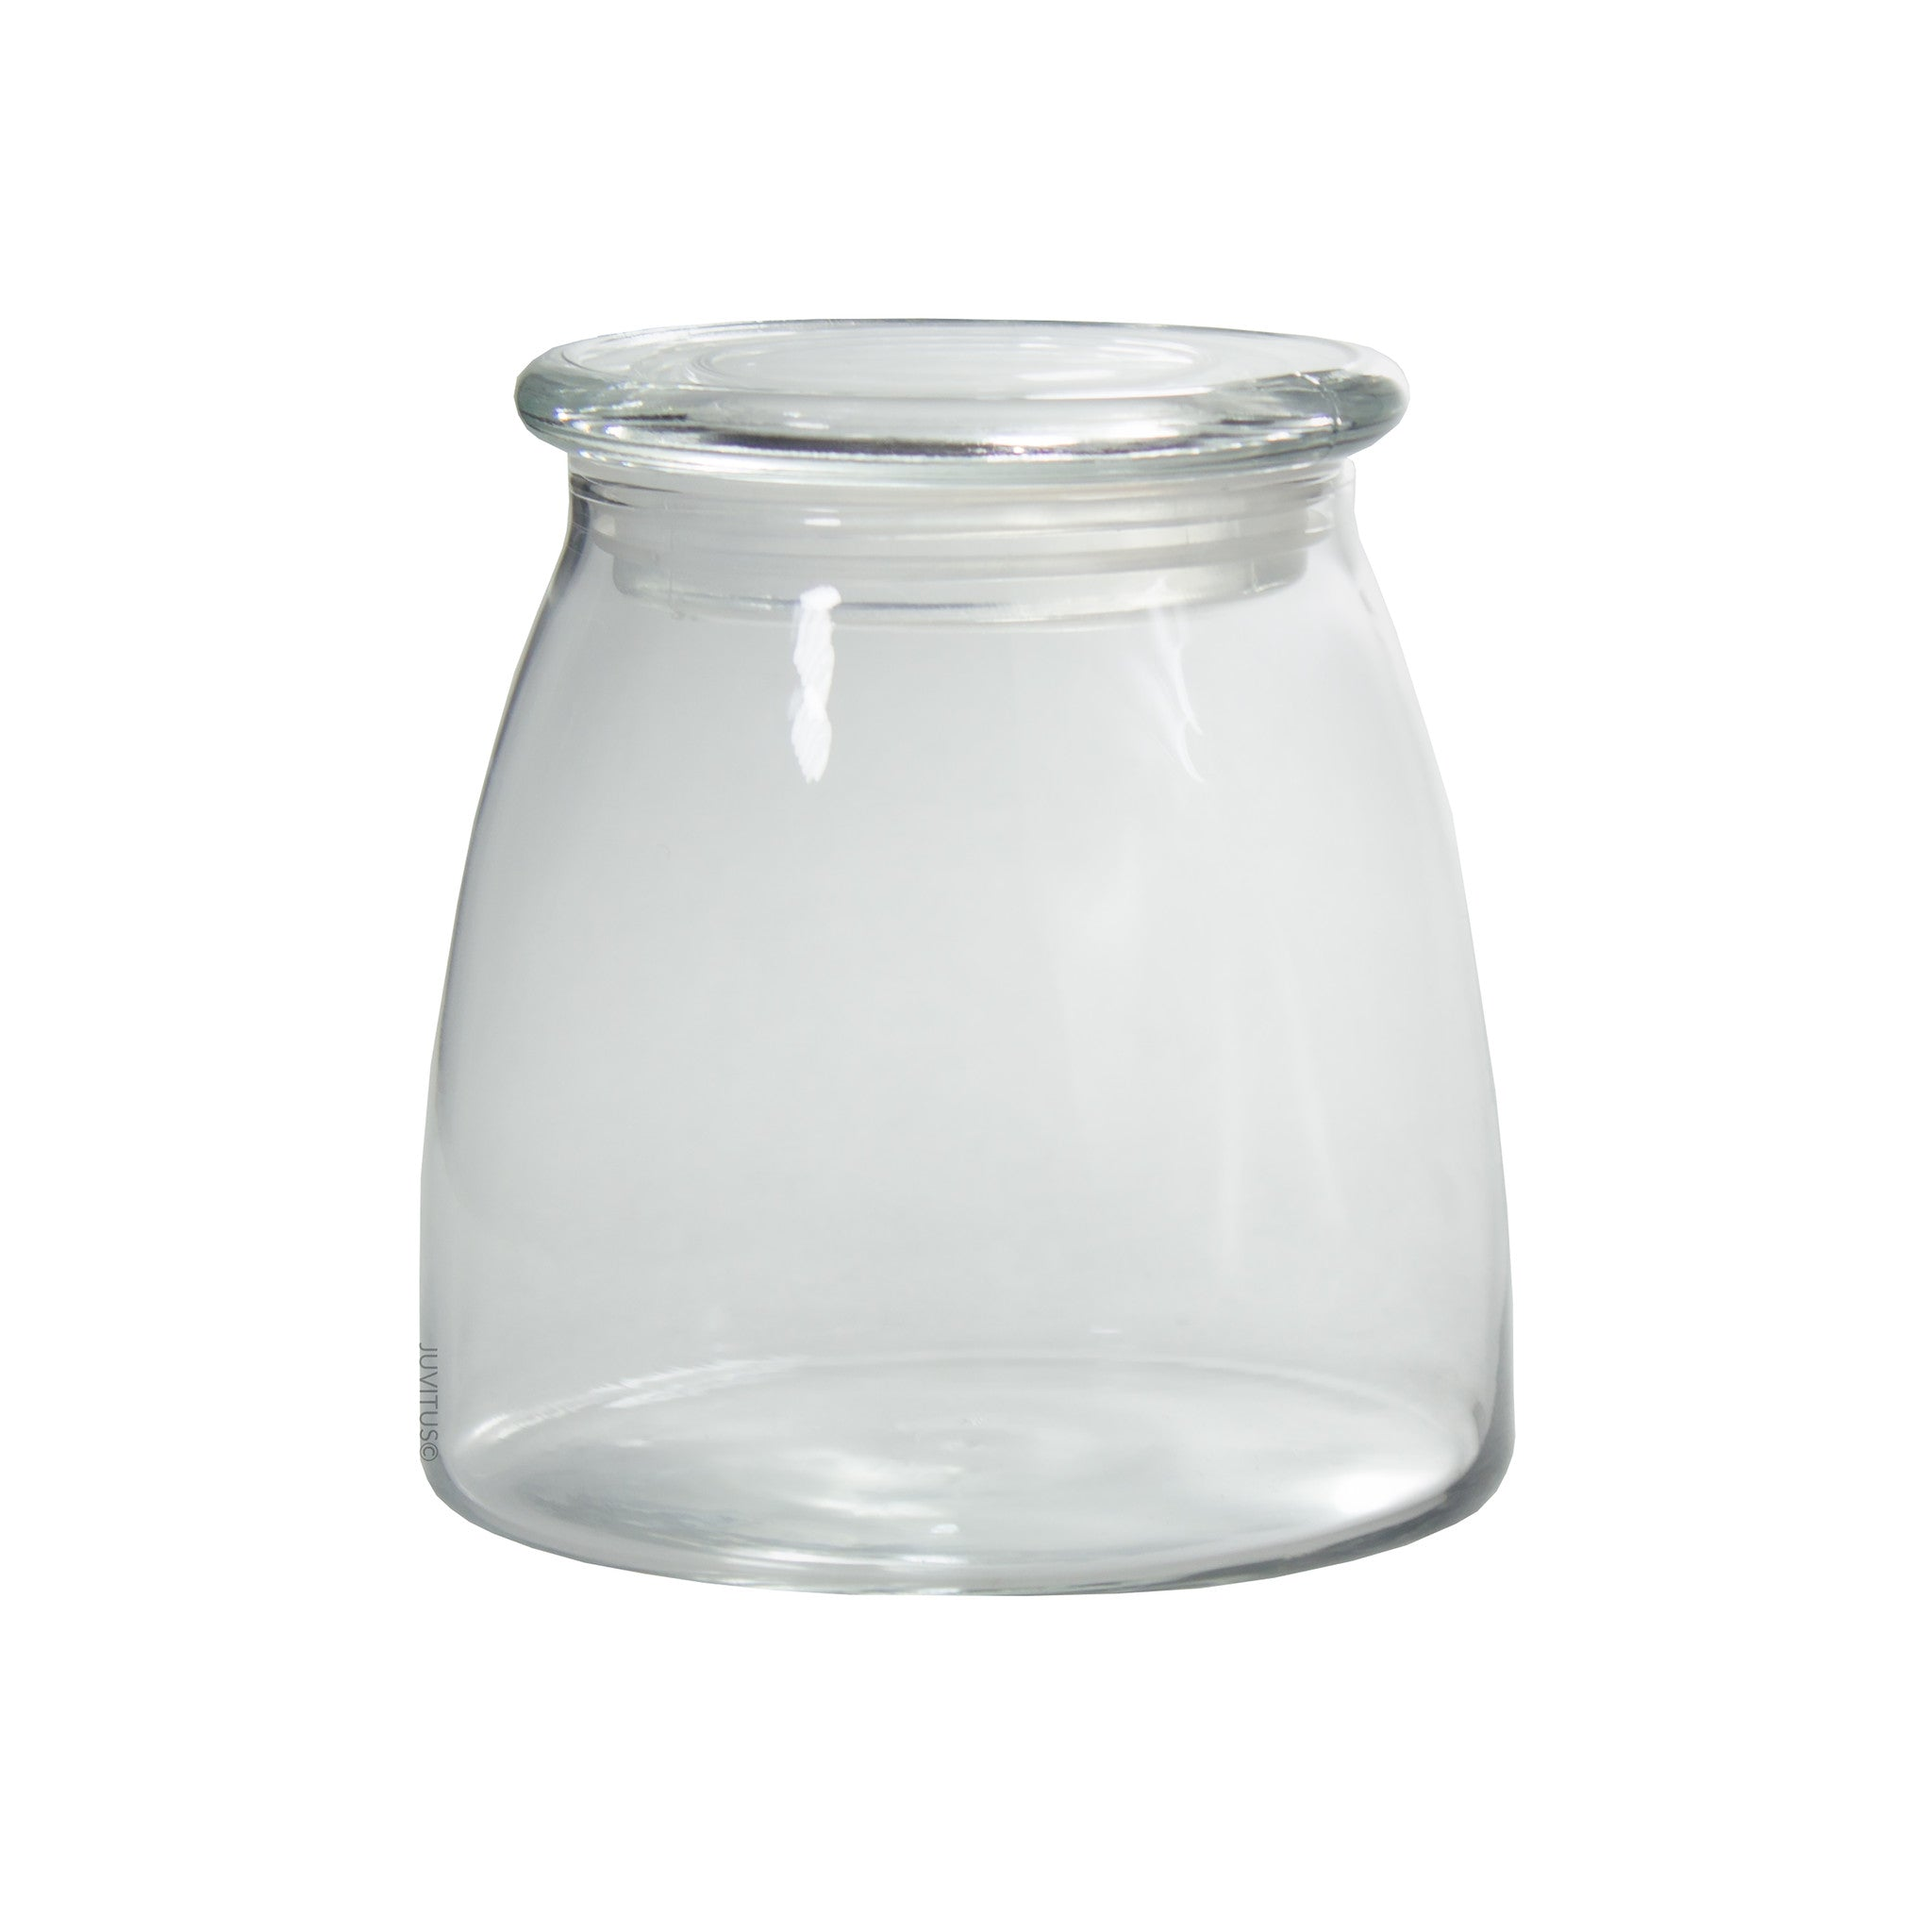 Glass Candle Jar in Clear with Glass Lid - 27 oz / 800 ml ...